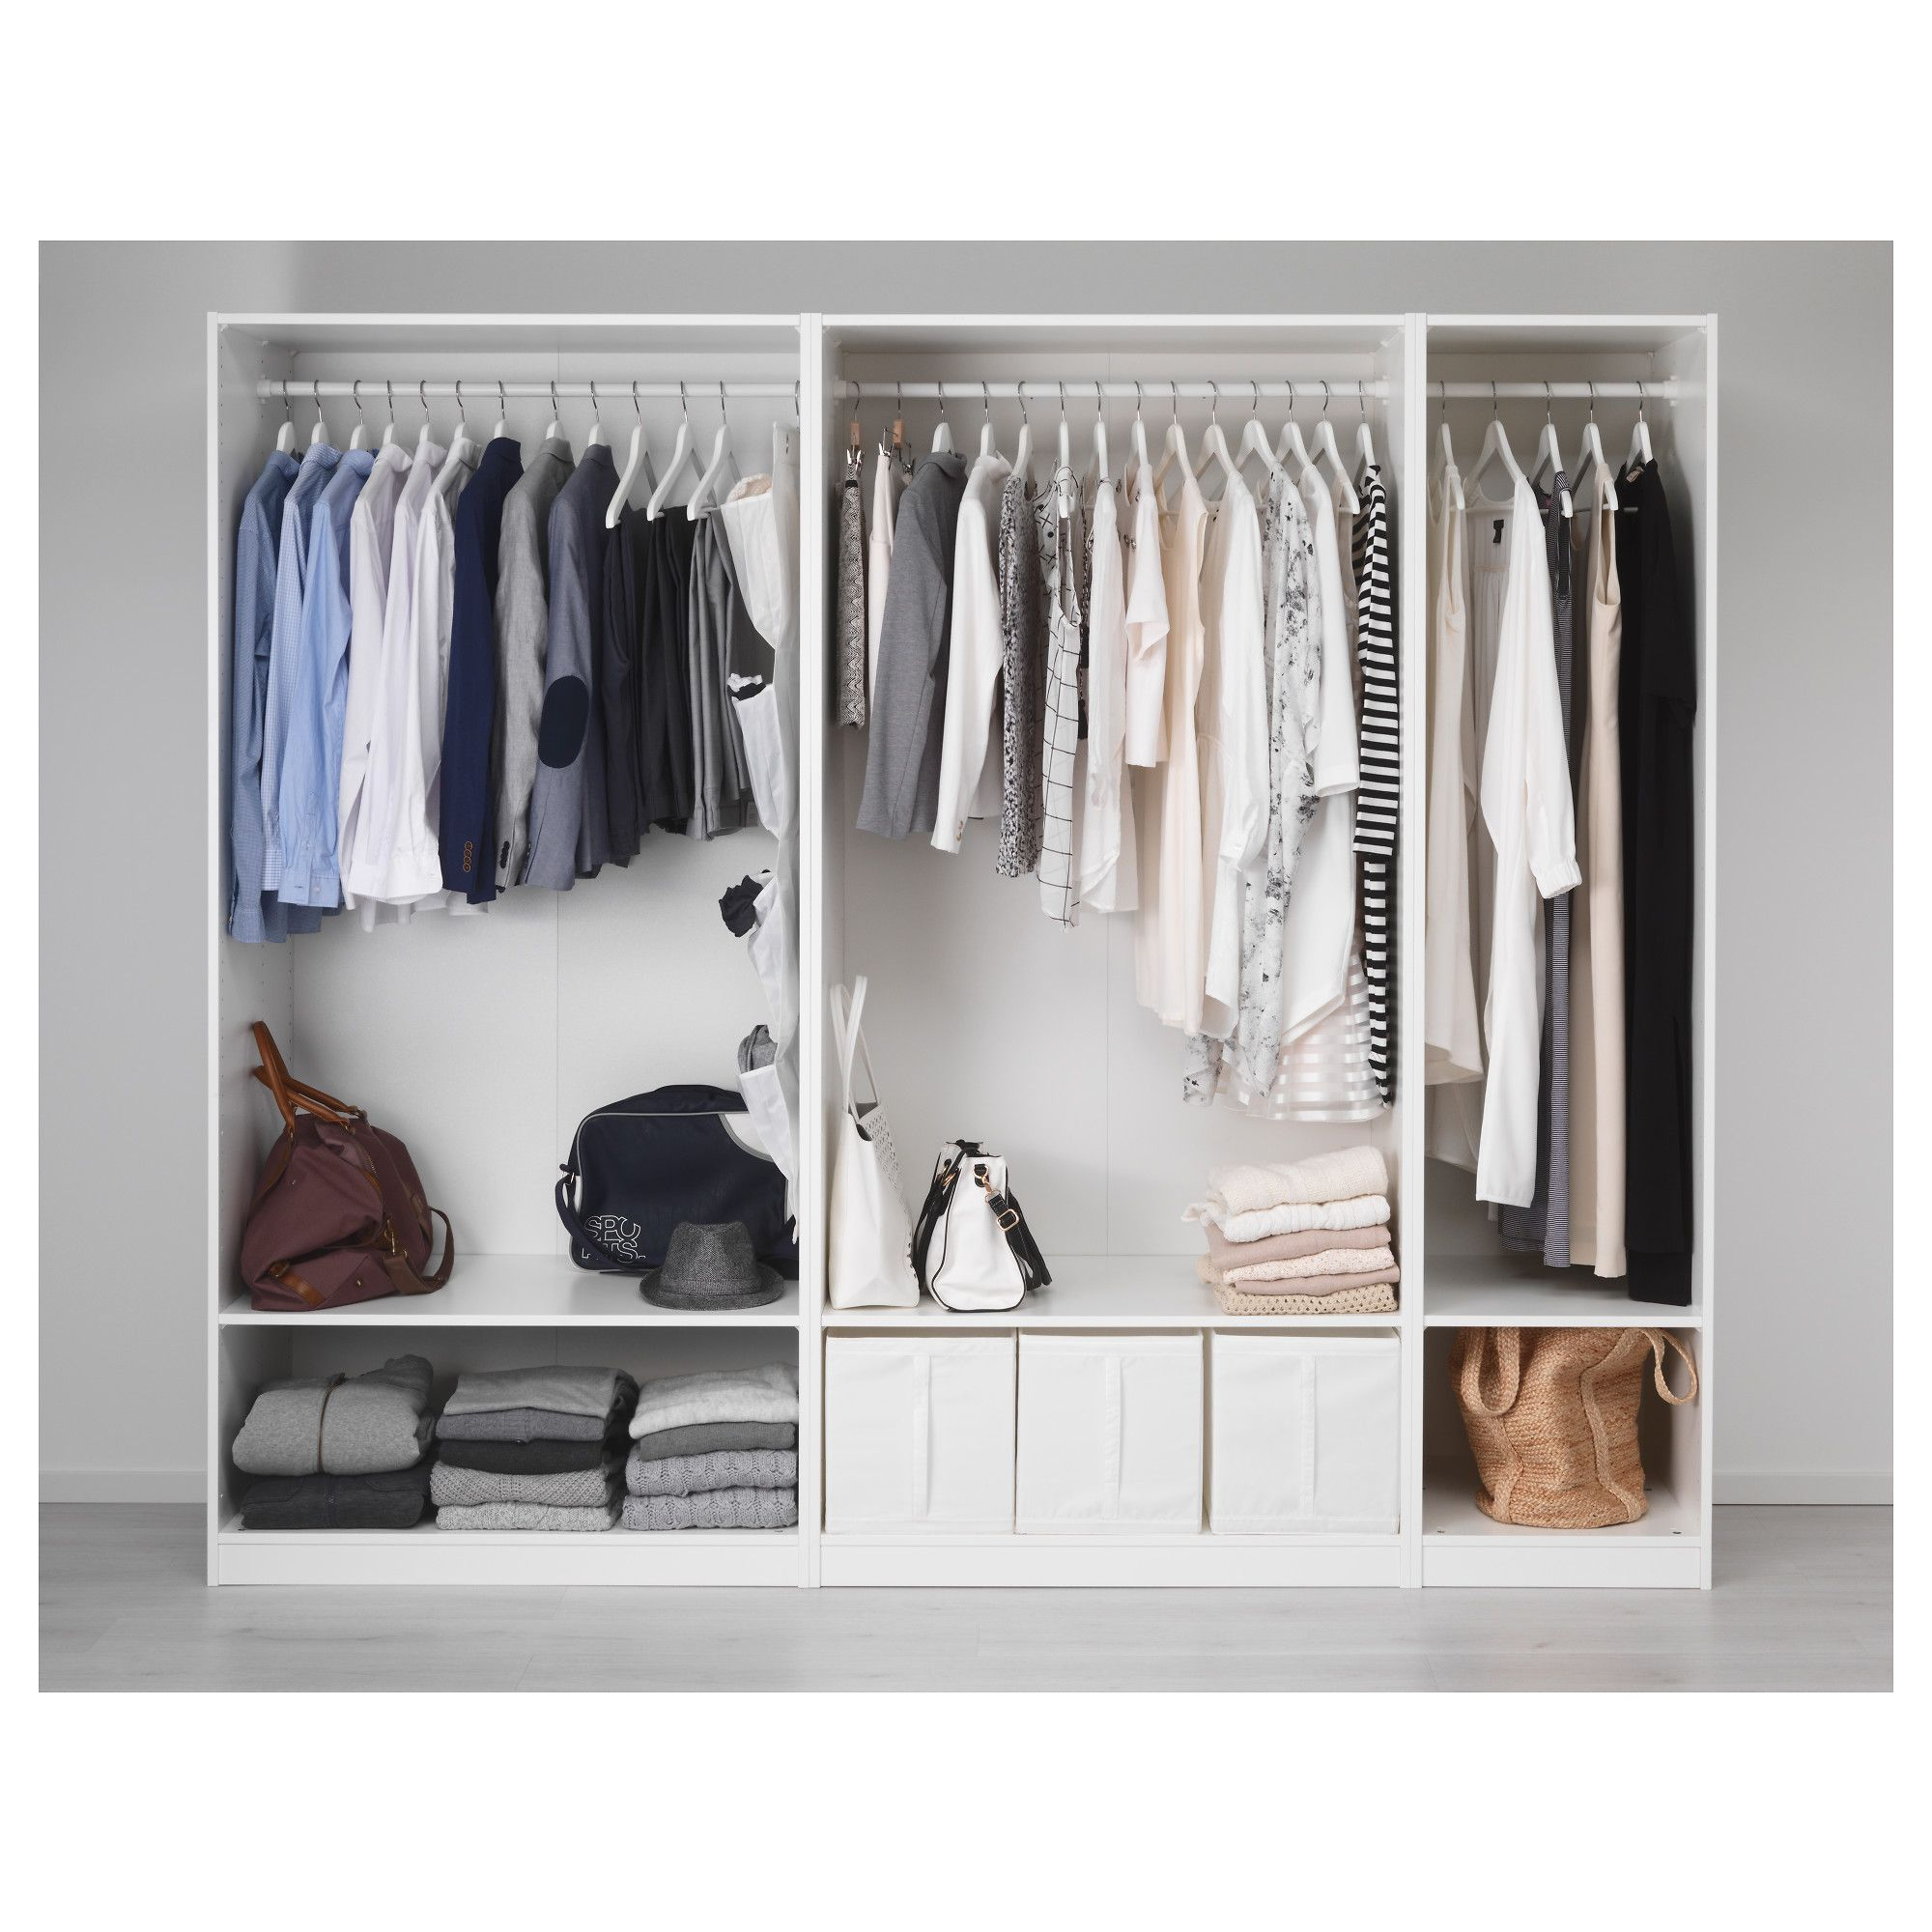 Guardaroba Pax Ballstad Ikea.Ikea Pax Wardrobe White Ballstad White Moms House Bedroom Pax